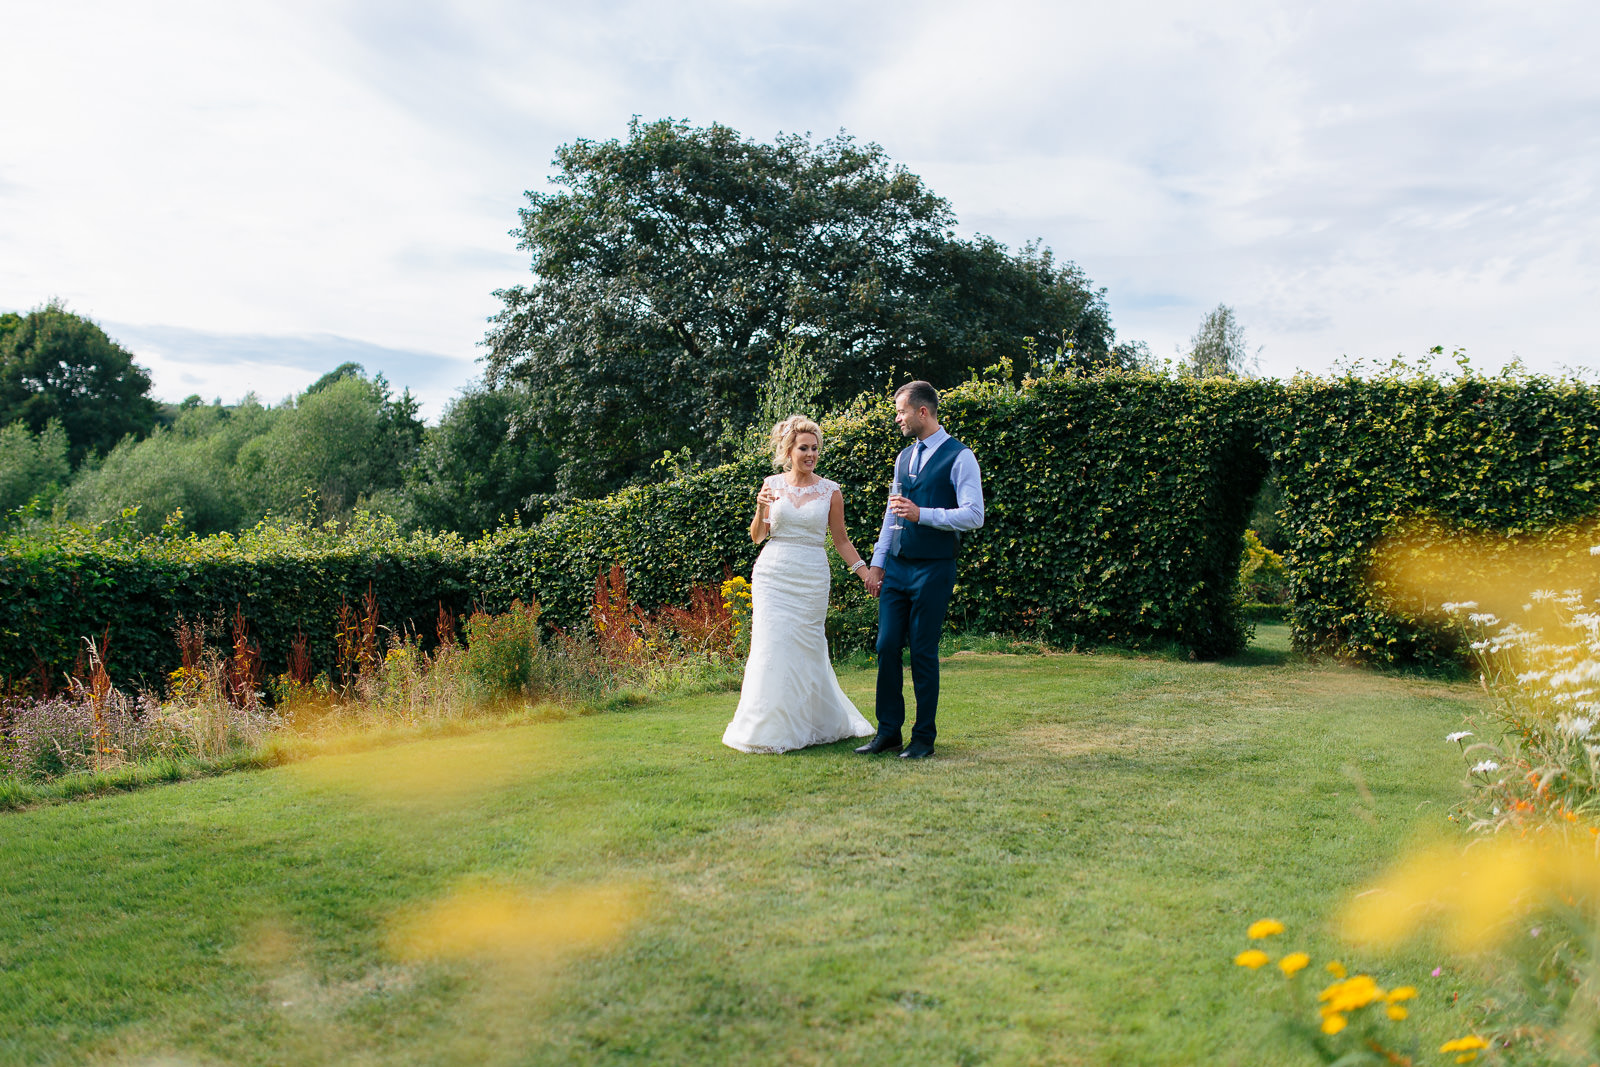 Manchester Wedding Photographer - Natural Documentary Style Photography